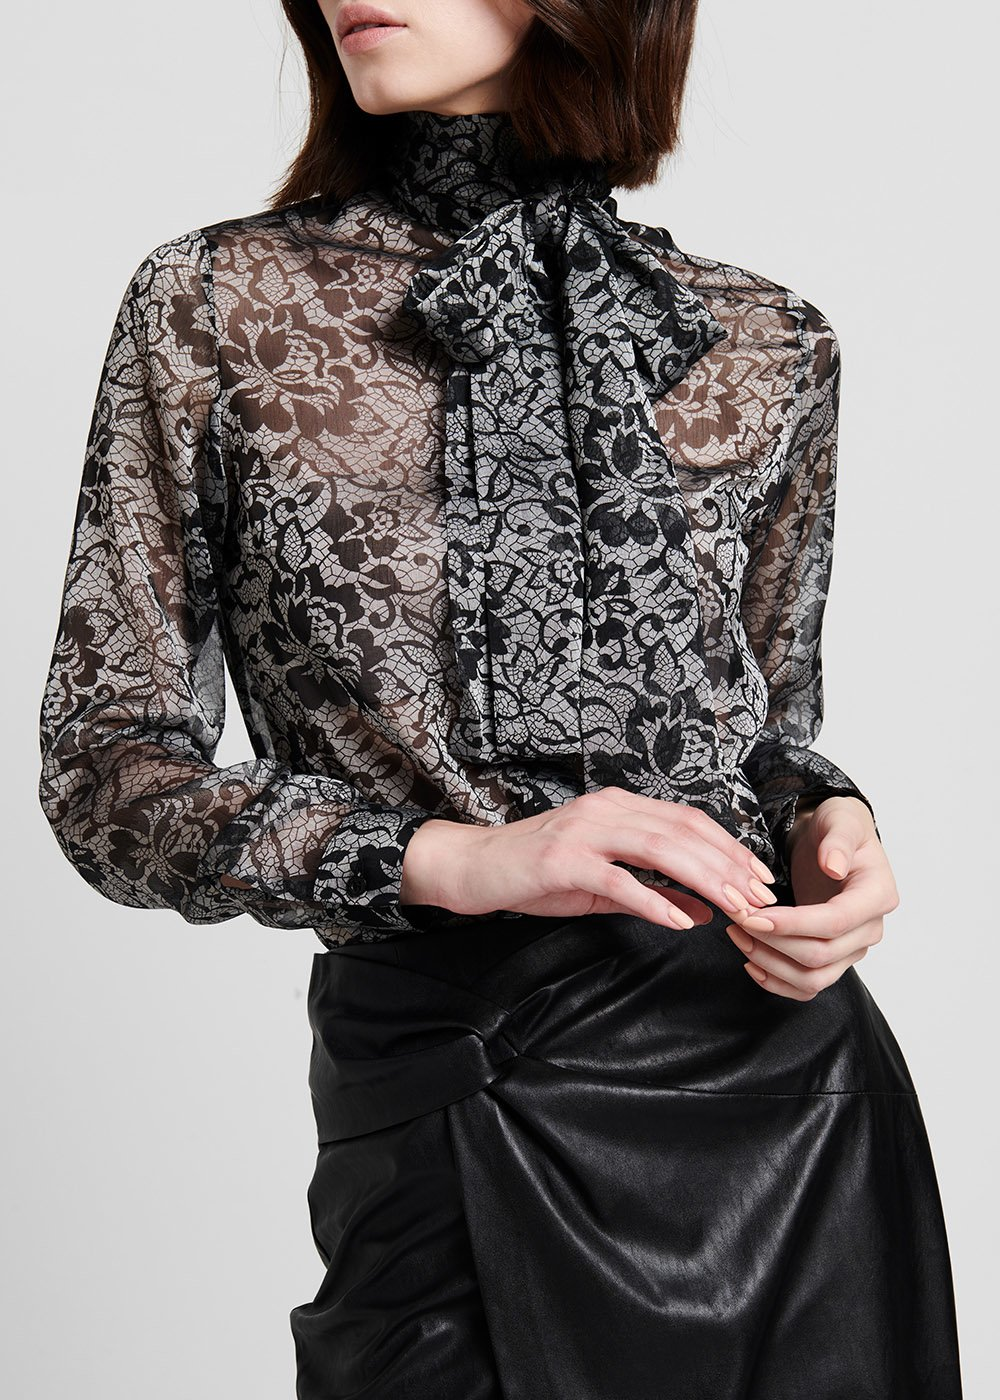 Organza shirt with bow on the neckline - Grey / Black Fantasia - Woman